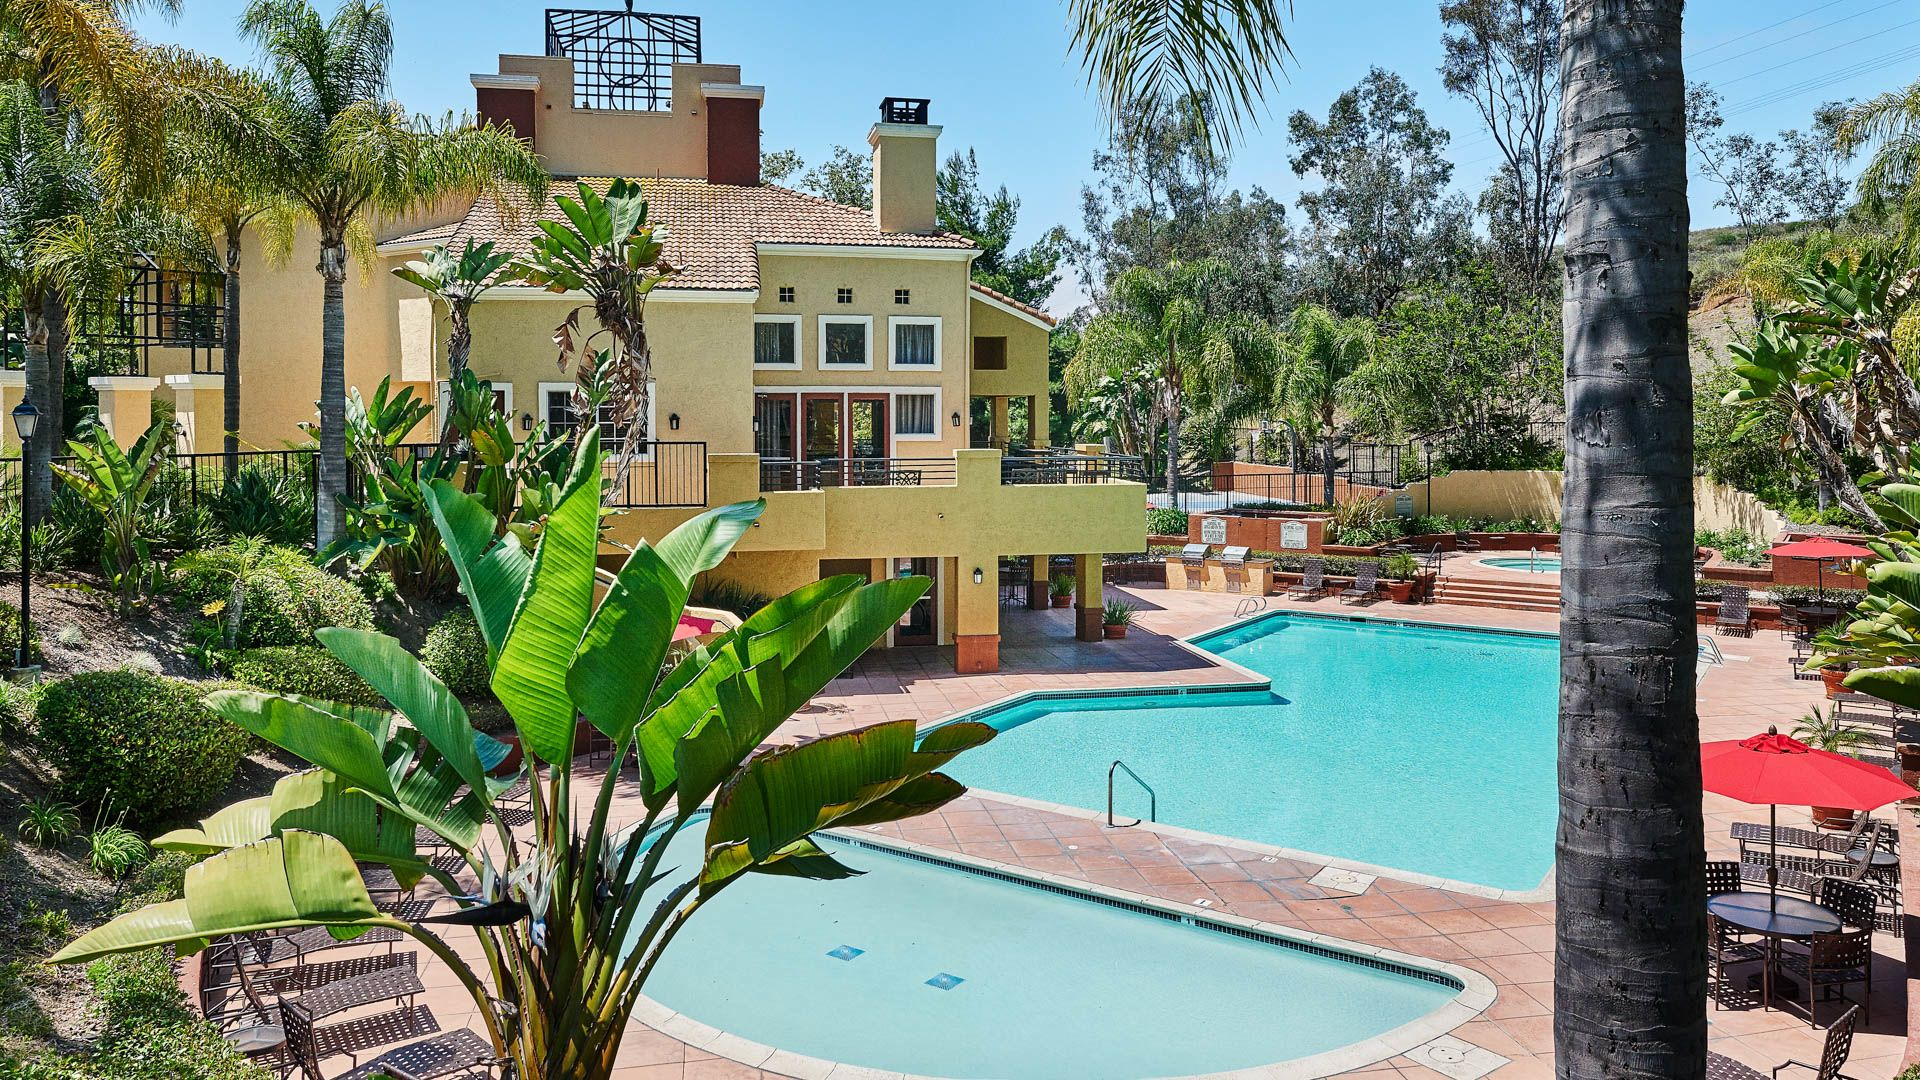 Deerwood apartments rancho bernardo 15640 bernardo - Clairemont swimming pool san diego ca ...